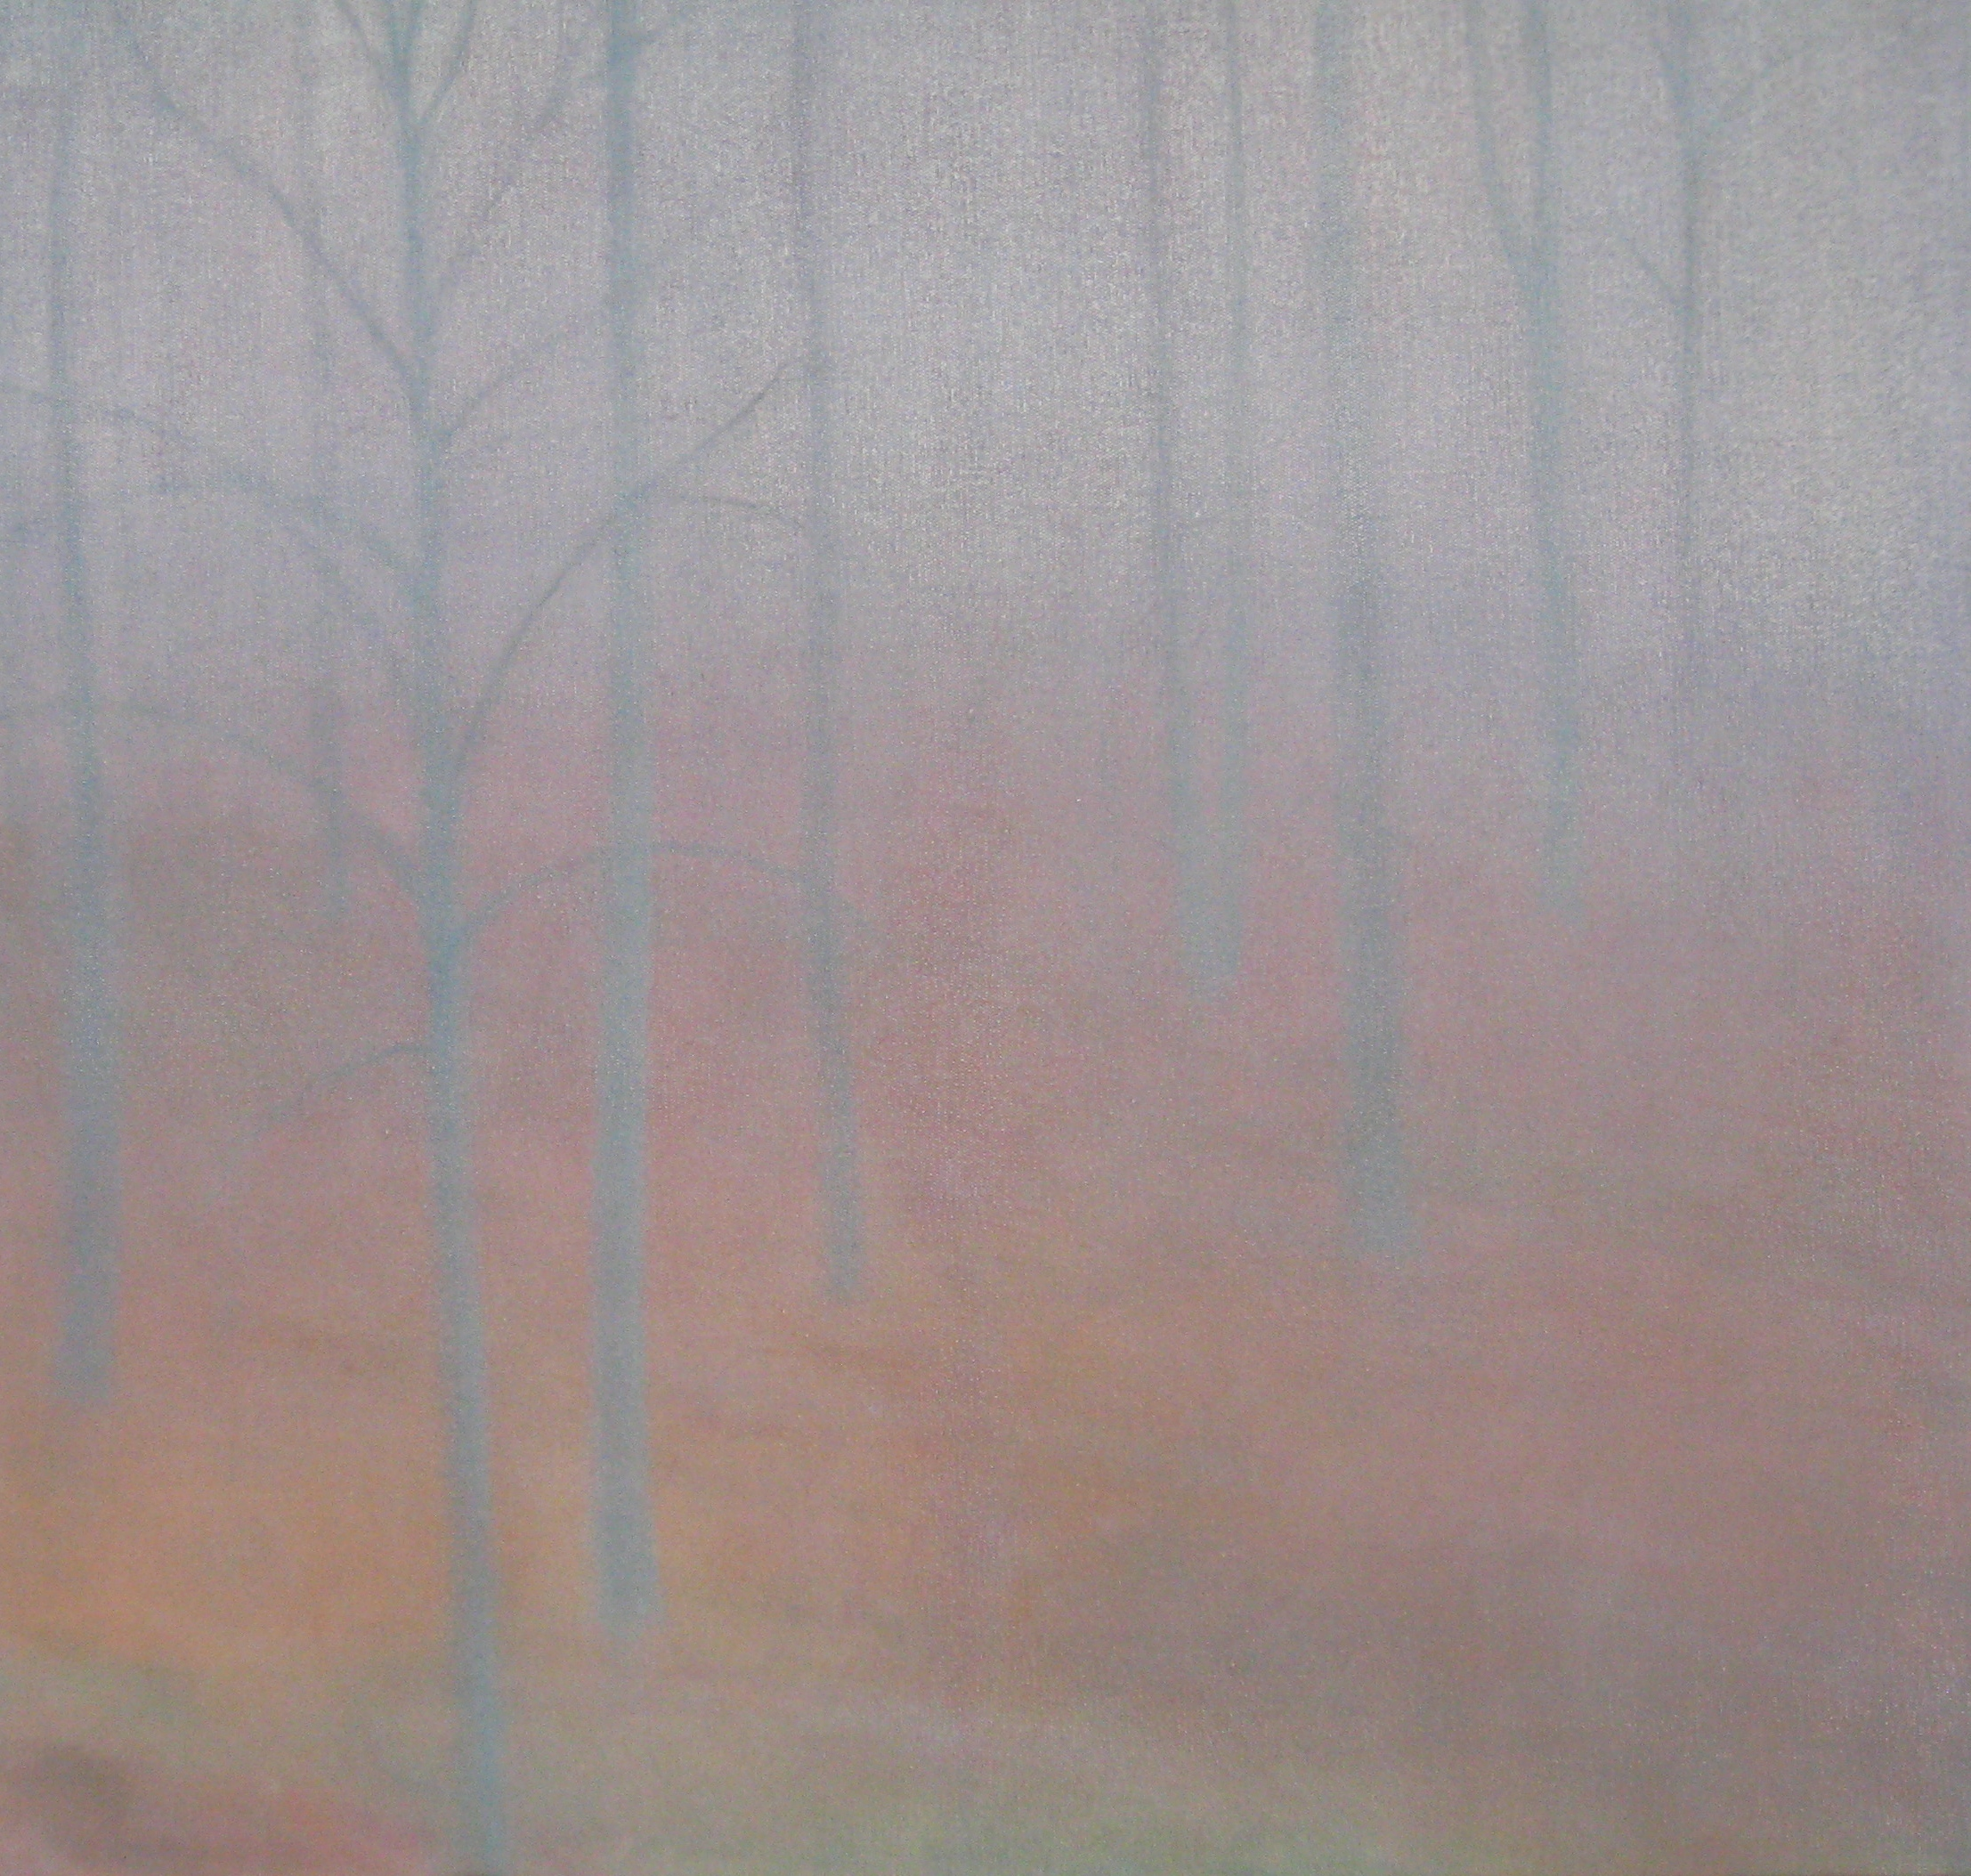 "BEECH WOOD II  24X24"" (61X61cm)  Oil on canvas     Sold"